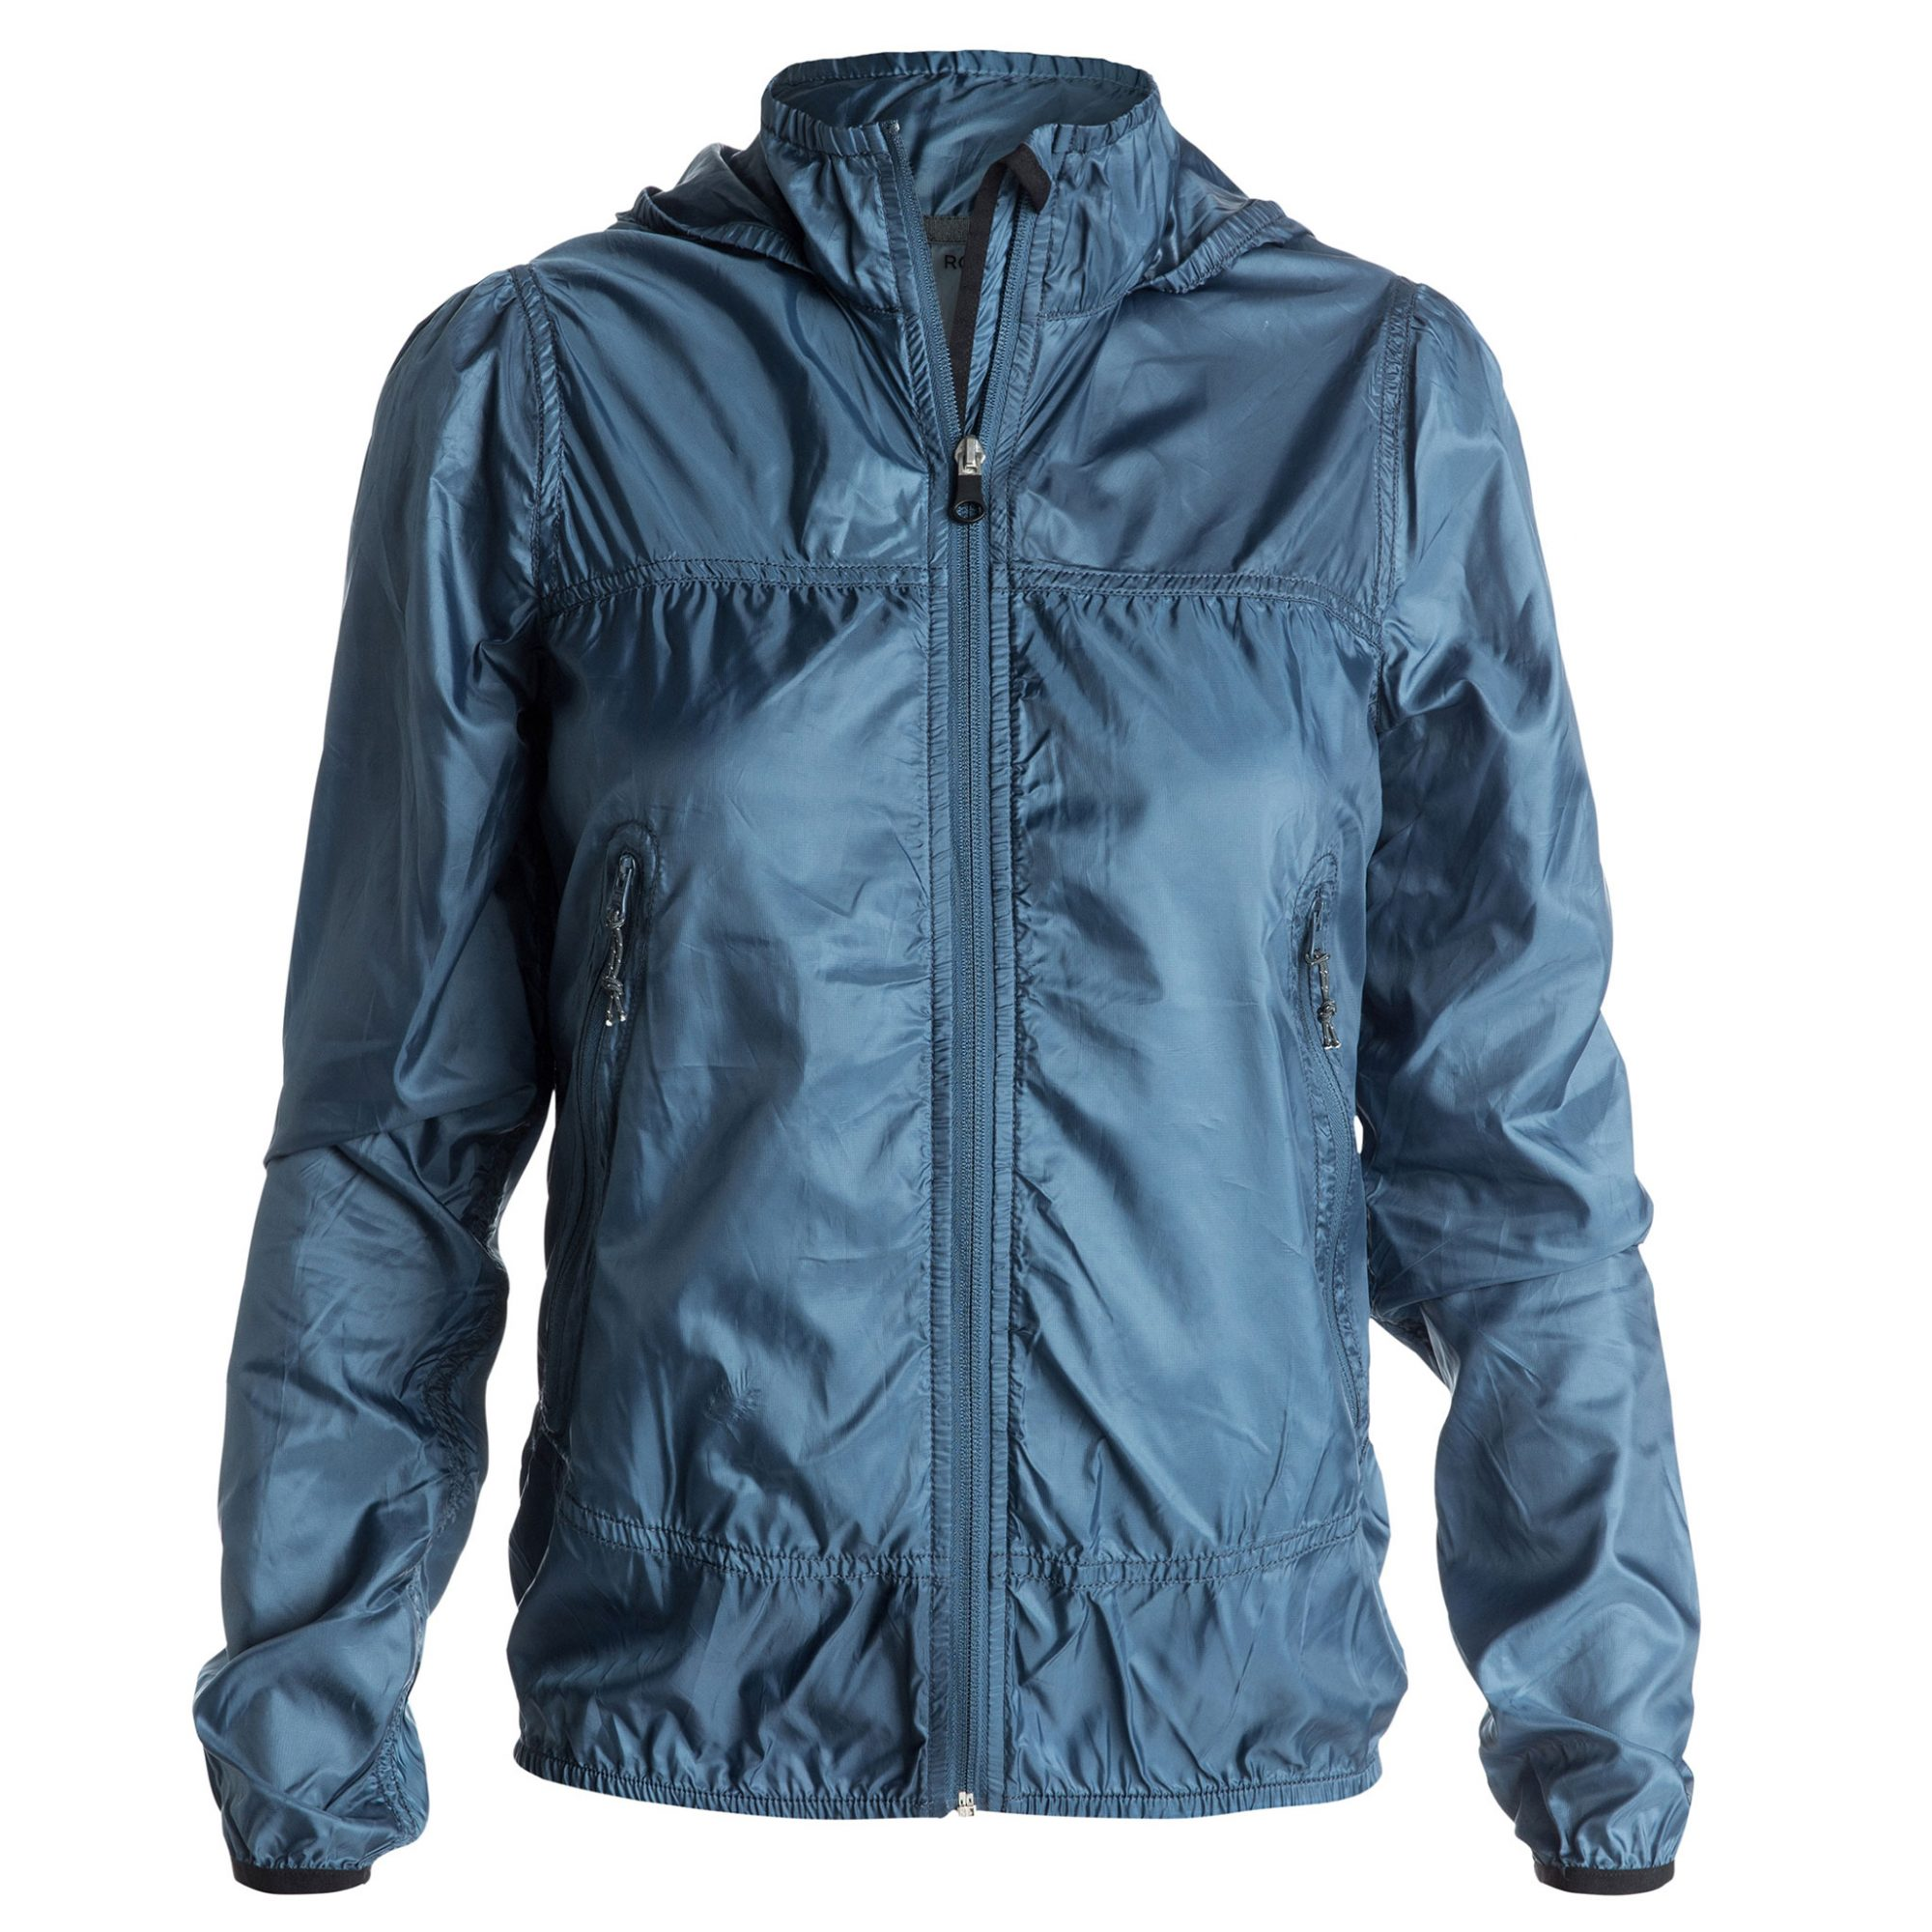 Roxy's Rain Runner Hooded Windbreaker